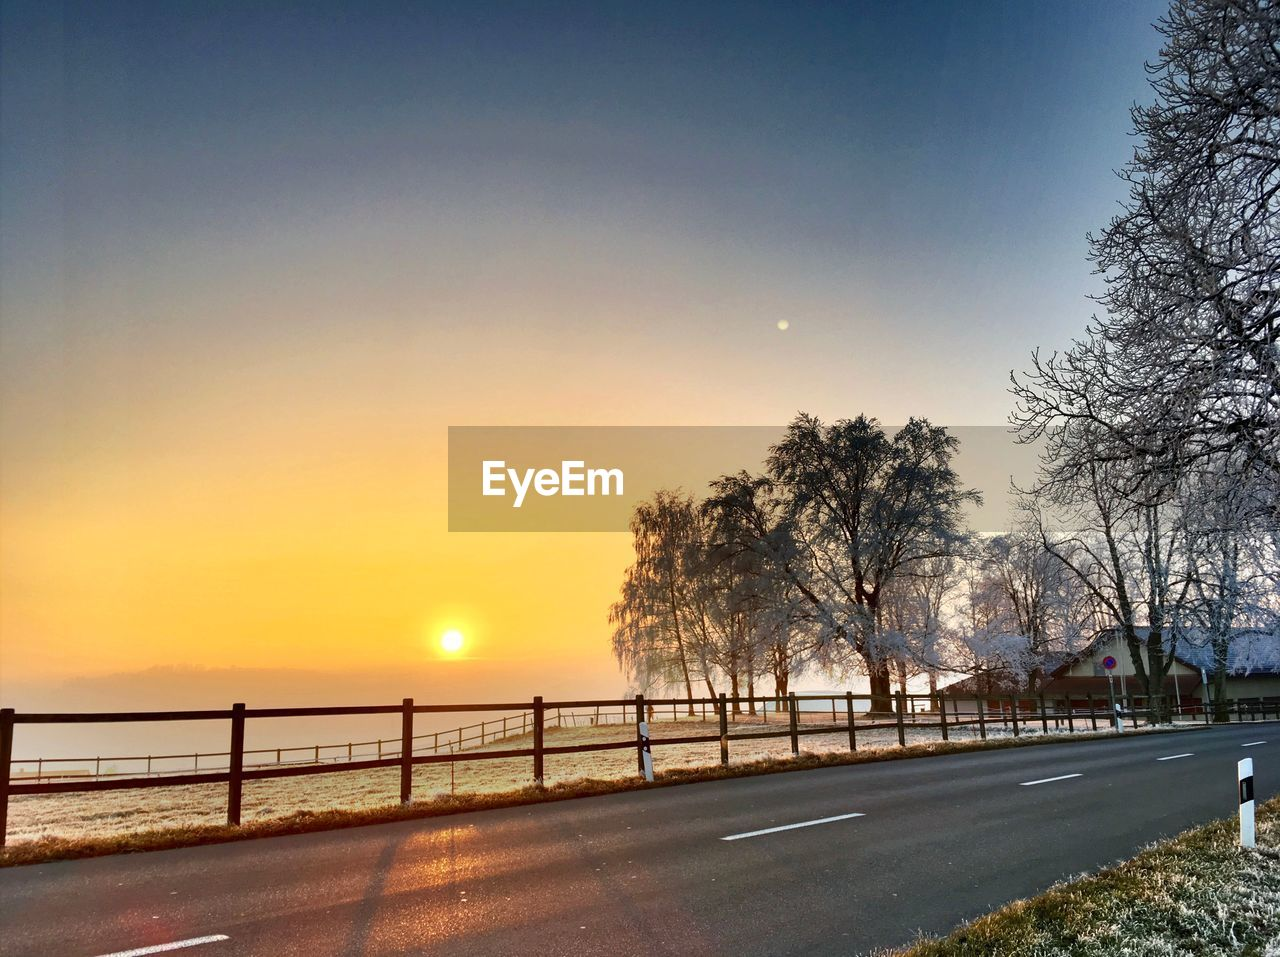 sun, sunset, tree, road, sky, orange color, nature, scenics, beauty in nature, outdoors, transportation, sunlight, clear sky, bare tree, tranquil scene, no people, tranquility, moon, day